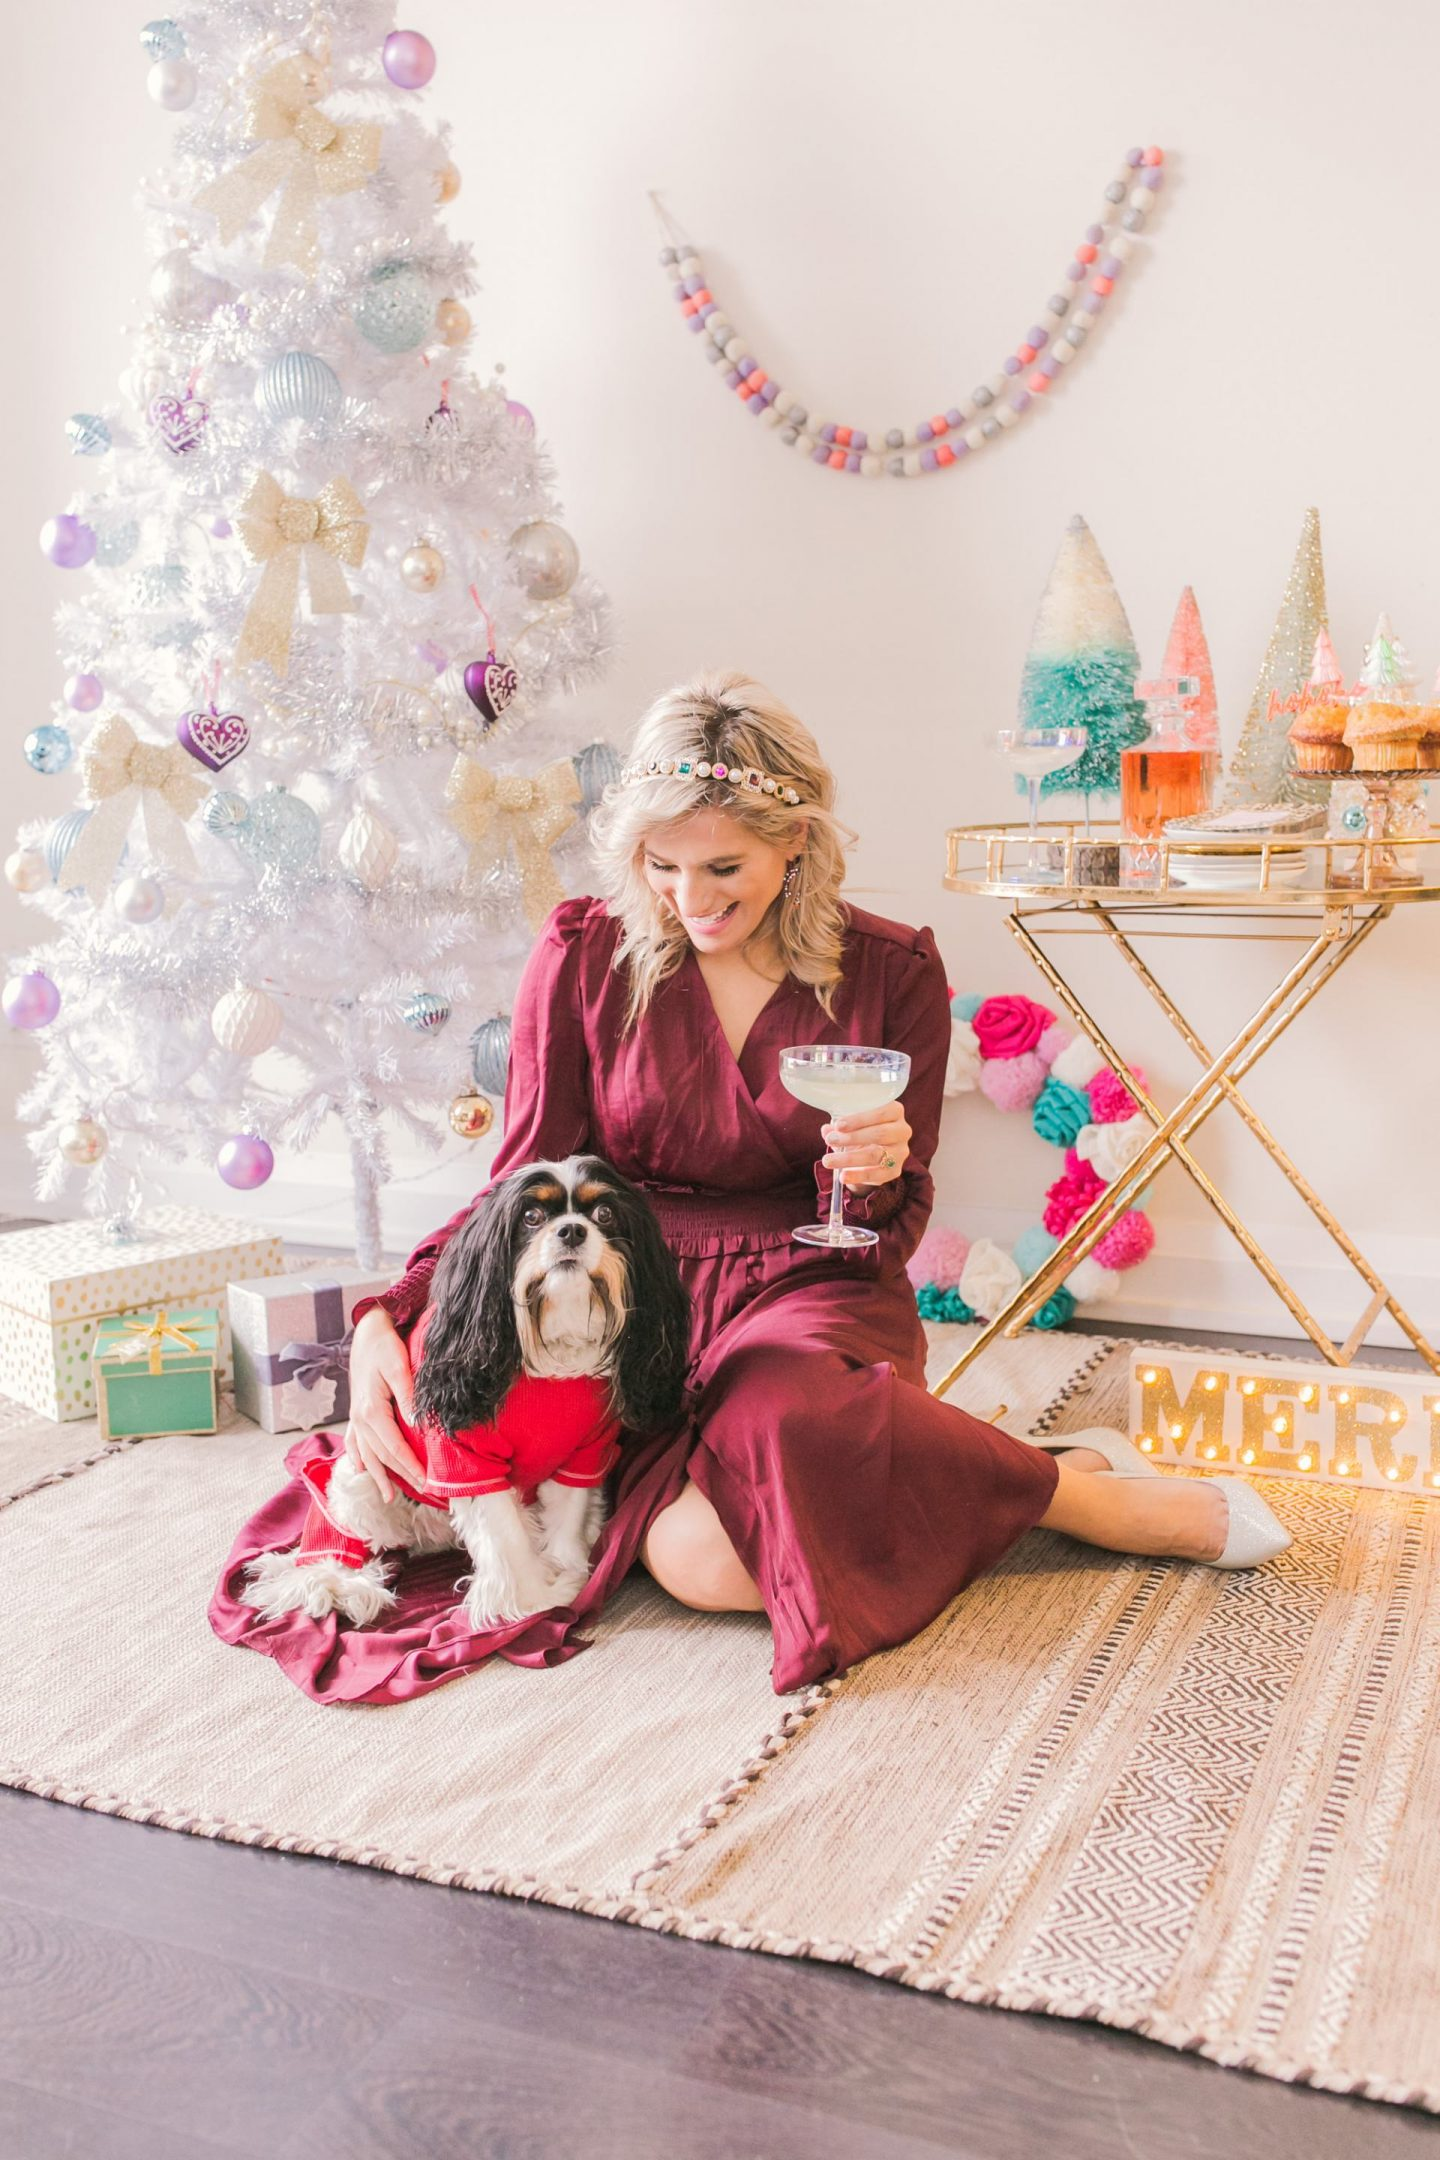 5 Easy Tips for Styling Your Holiday Bar Cart - Bijuleni with Cavalier King Charles Spaniel puppy